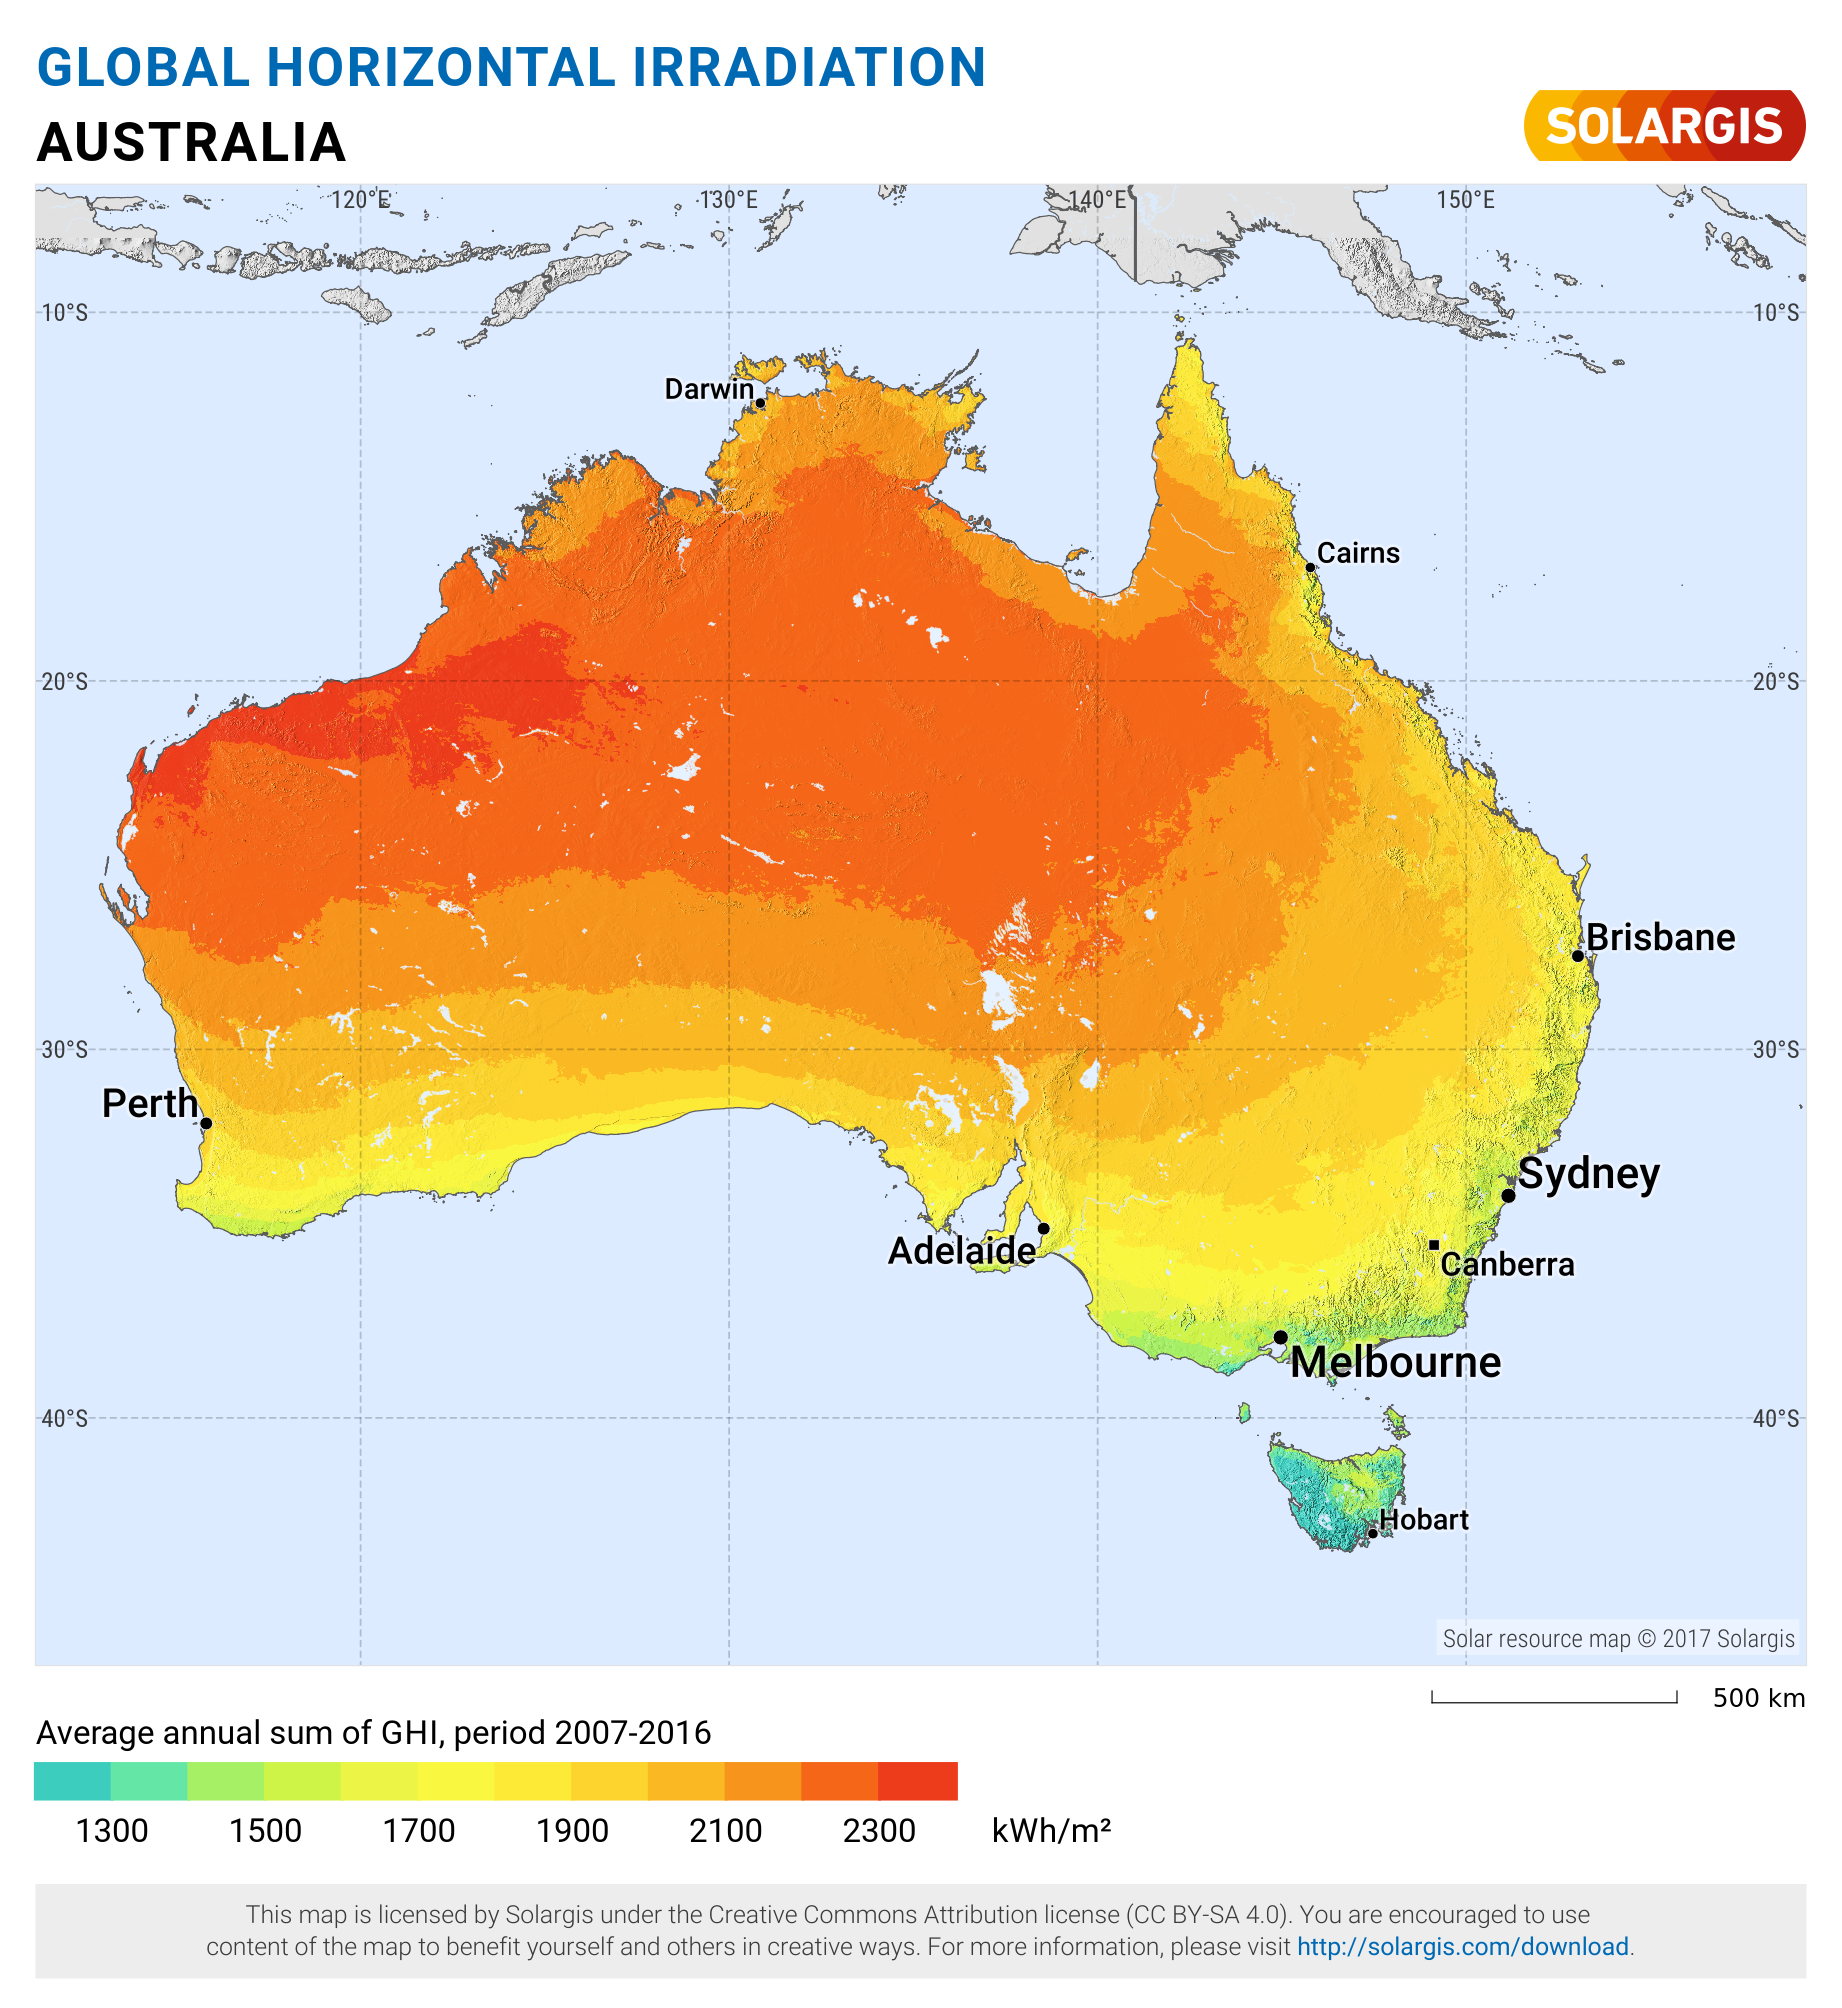 Australia Global Map.File Australia Global Horizontal Irradiance Map Png Wikimedia Commons